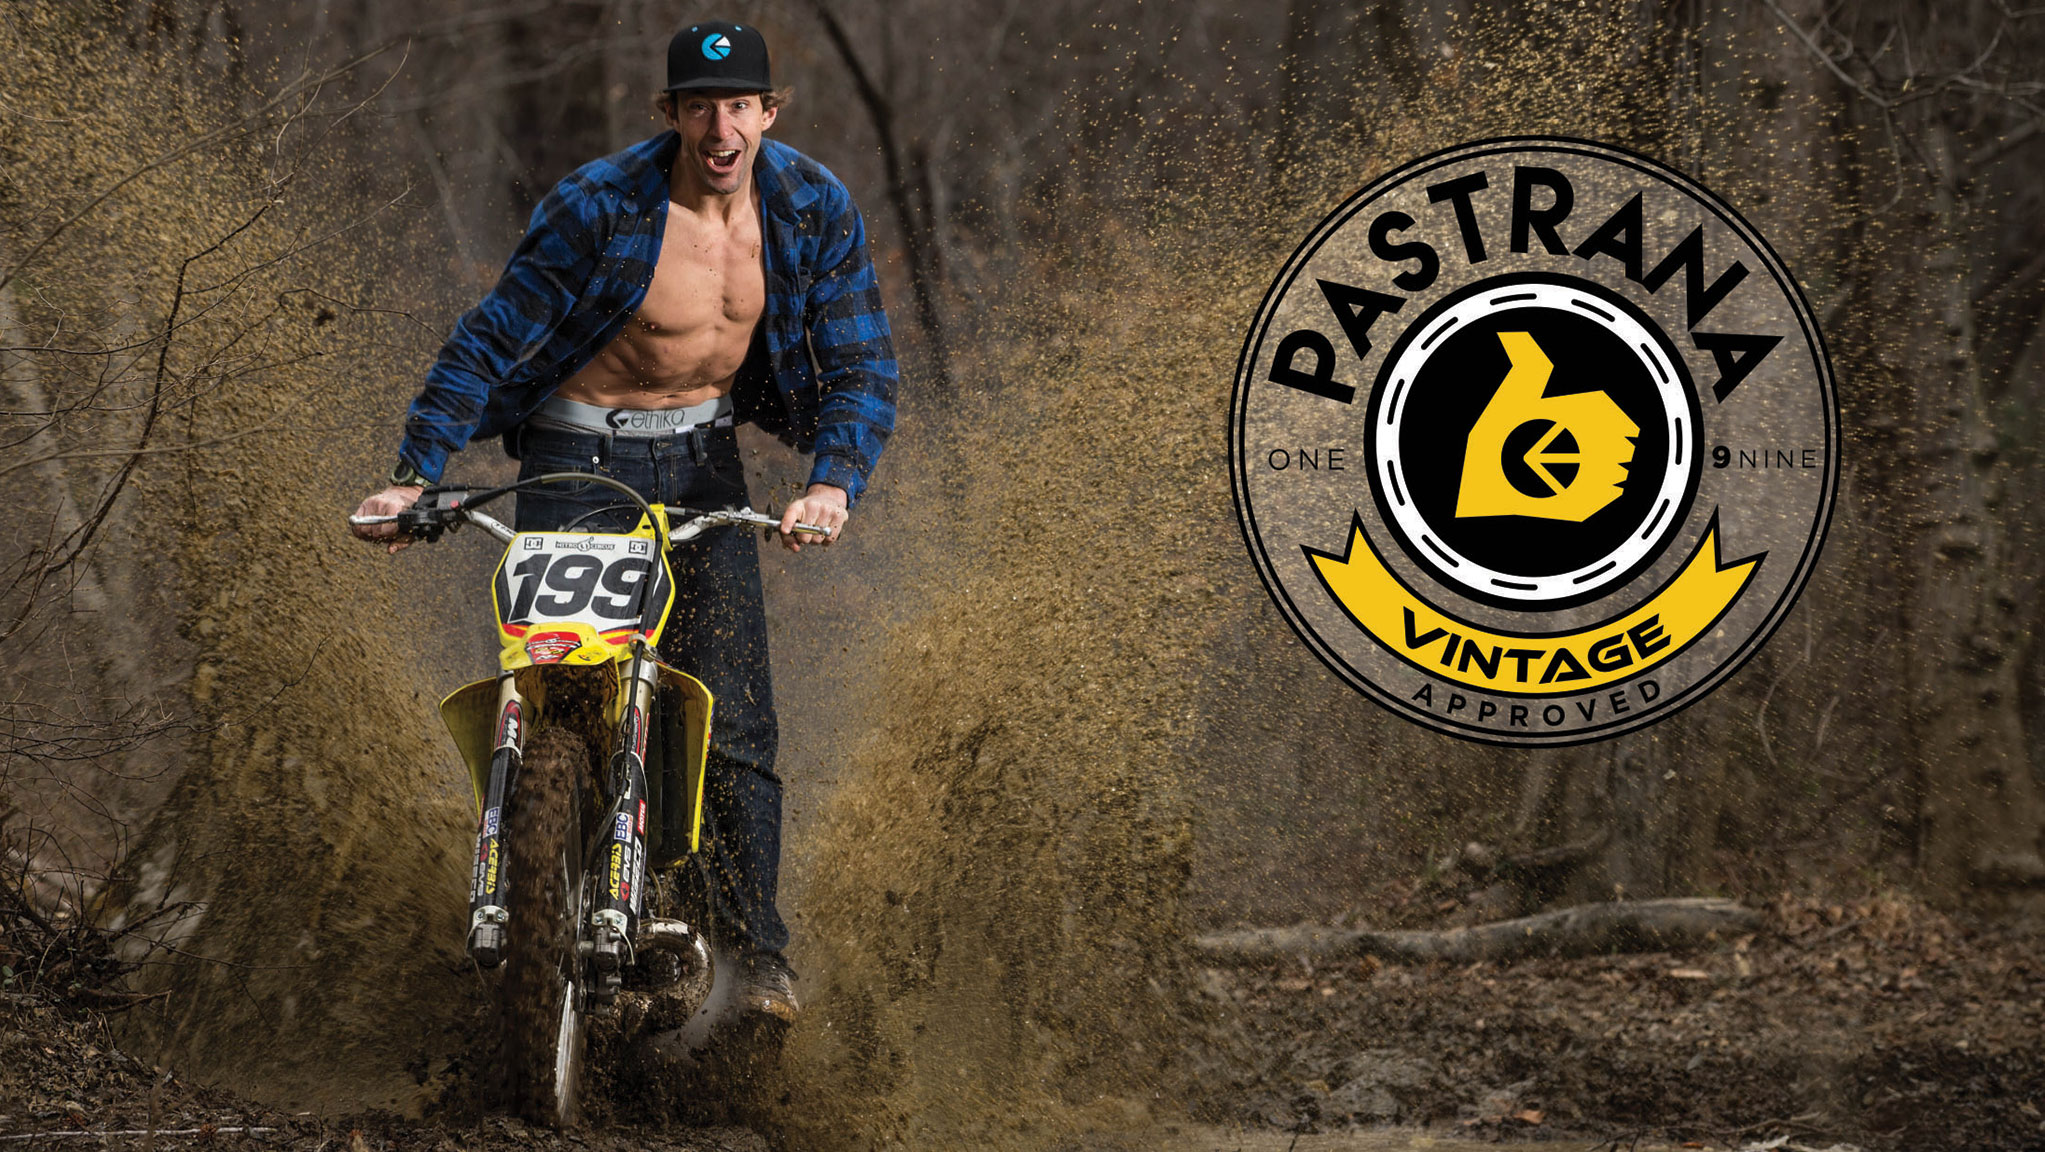 Introducing the Pastrana collection